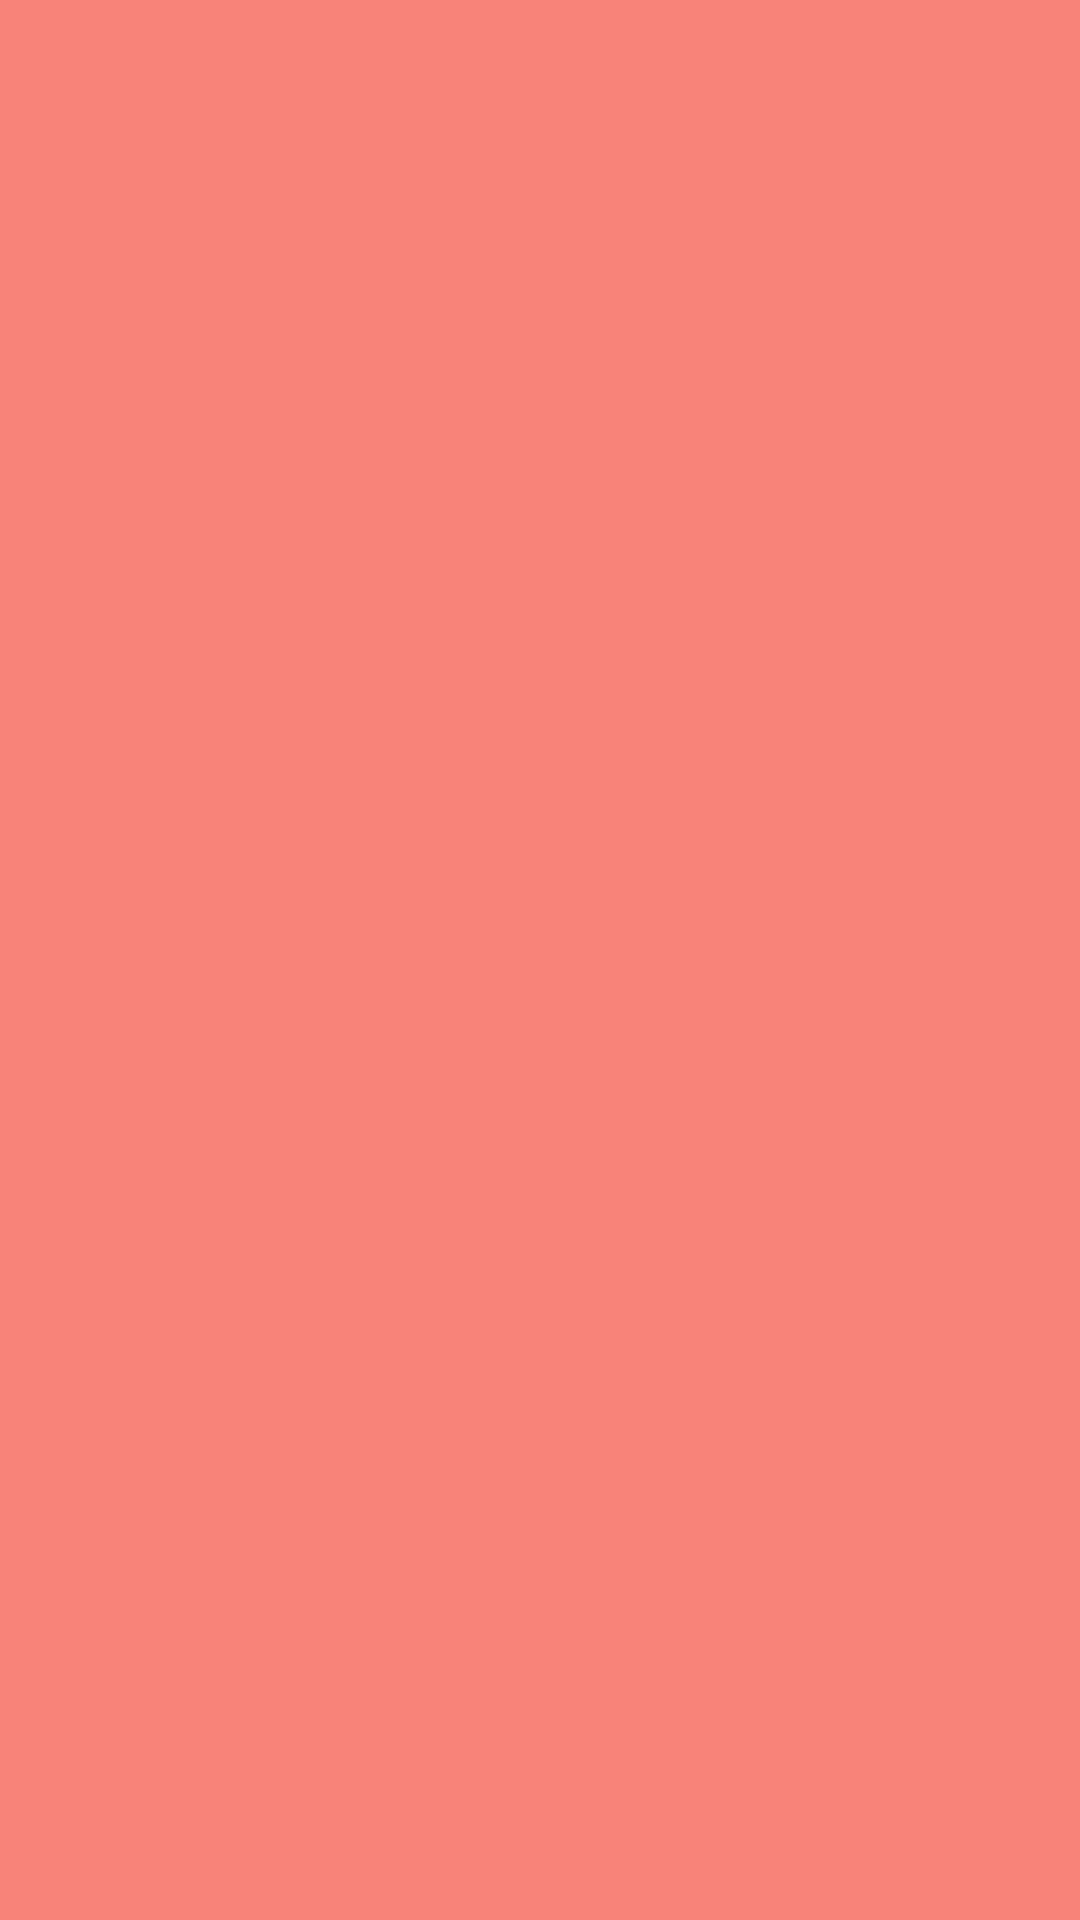 1080x1920 Coral Pink Solid Color Background